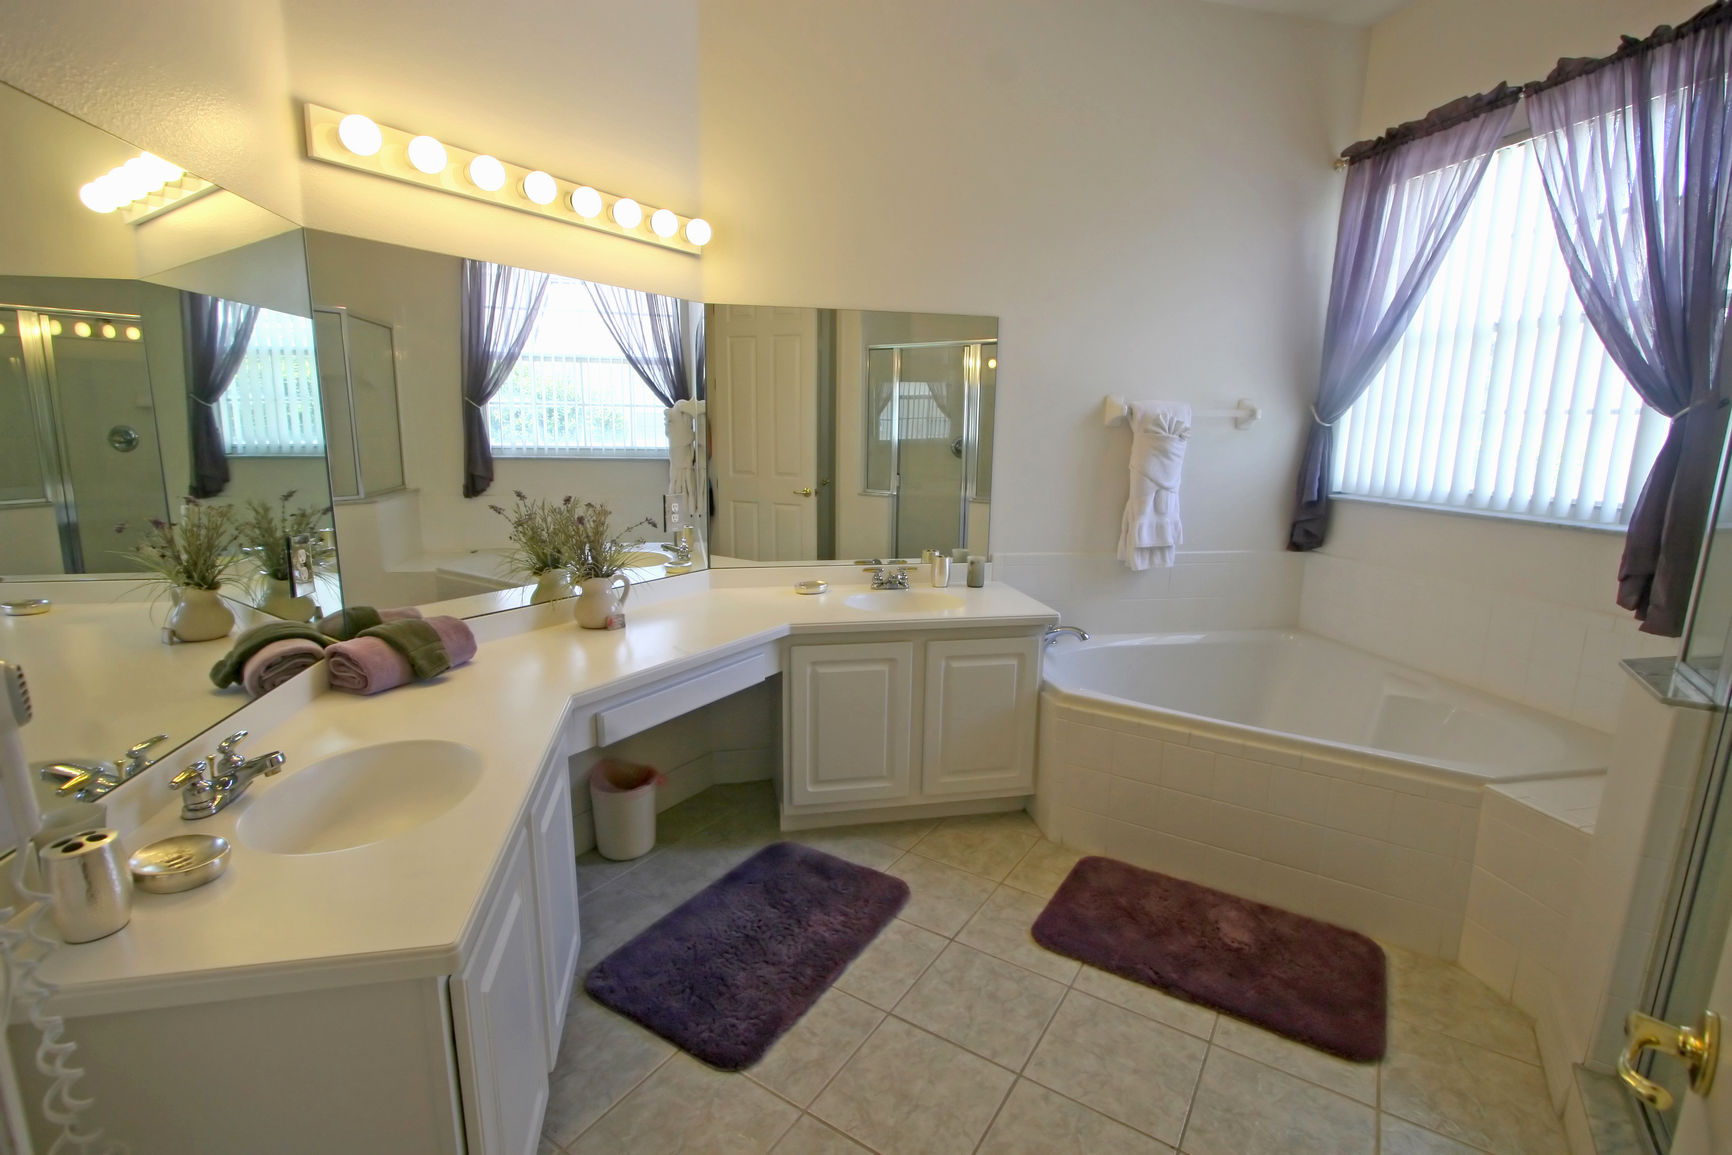 modern how to remodel a bathroom online-New How to Remodel A Bathroom Image